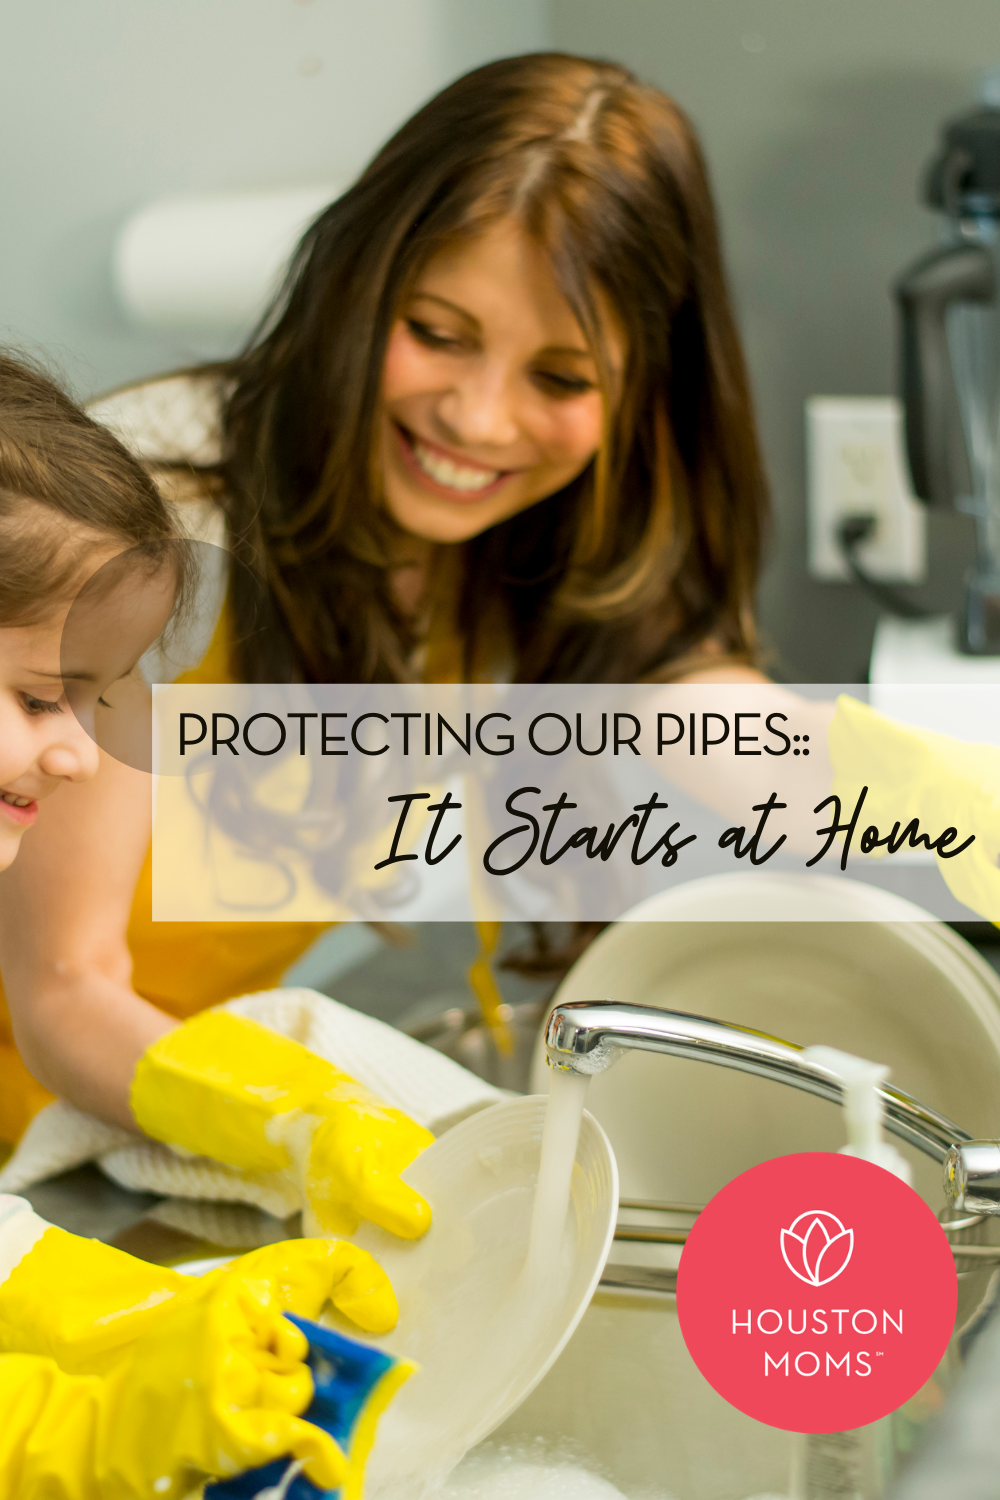 "Houston Moms ""Protecting Our Pipes:: It Starts at Home"" #houstonmoms #houstonmomsblog #momsaroundhouston"